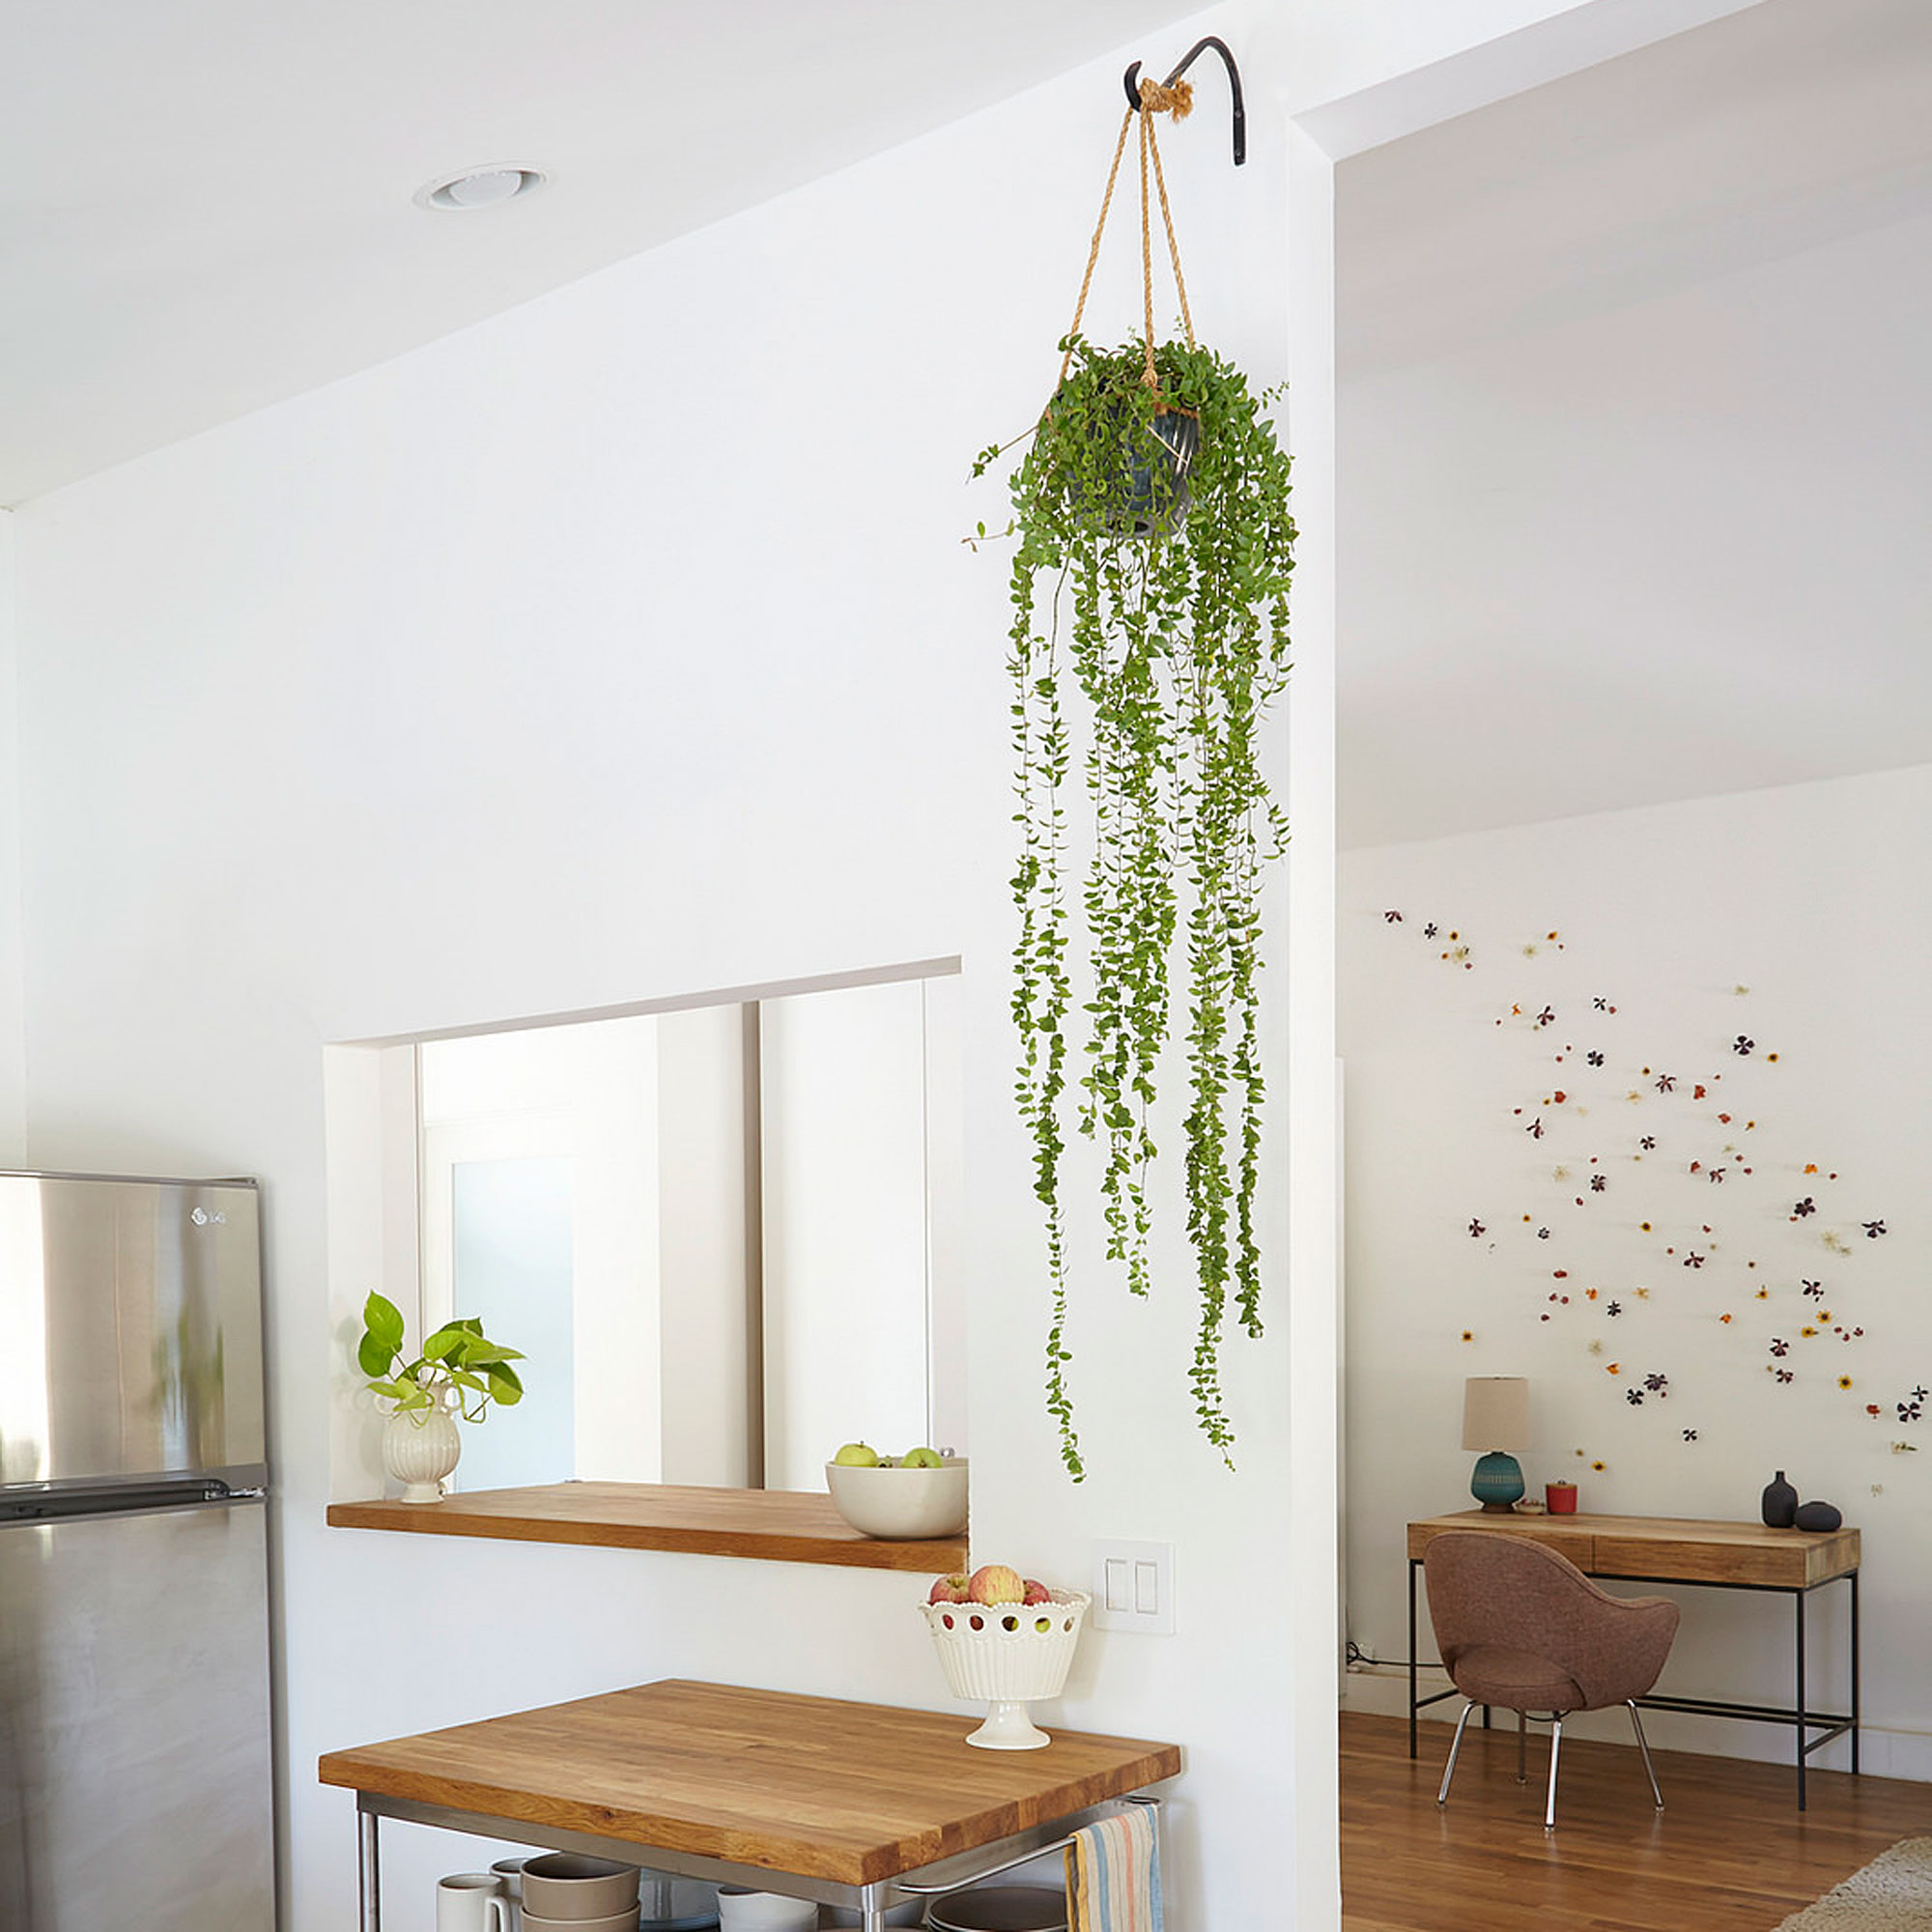 Pictures To Hang In Kitchen: Designing With Potted Plants